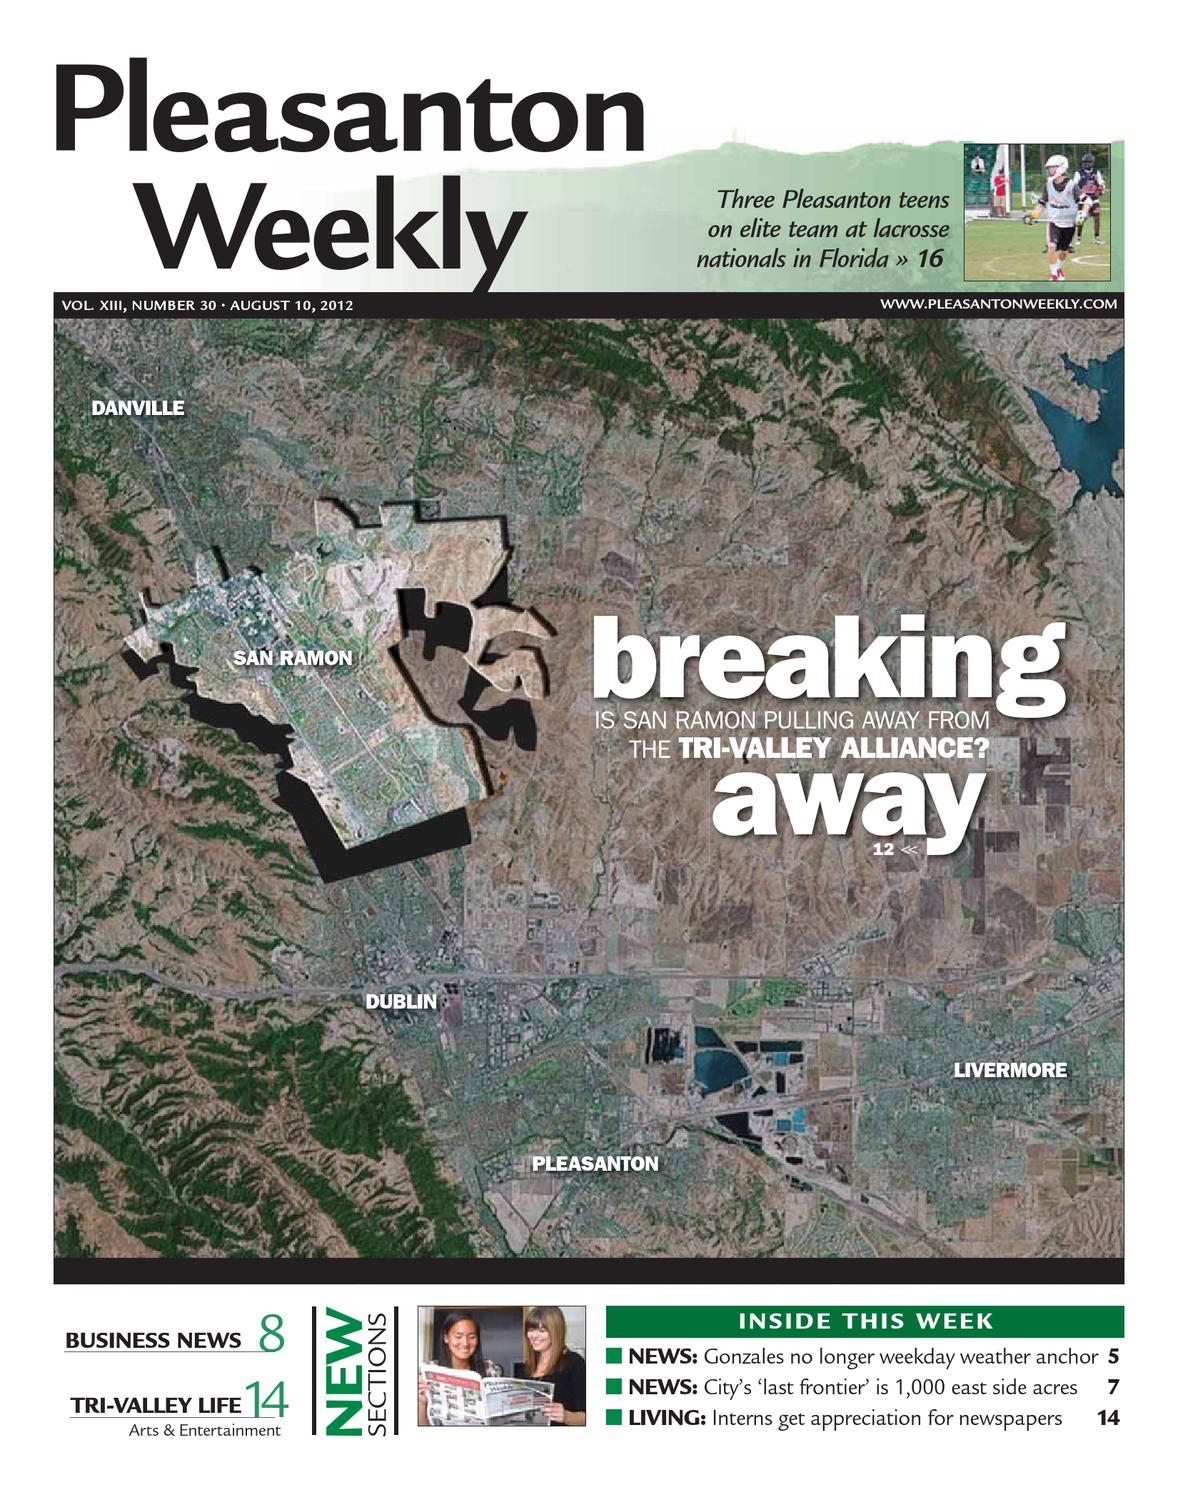 Pleasanton Weekly 08 10 2012 - Section 1 by Pleasanton